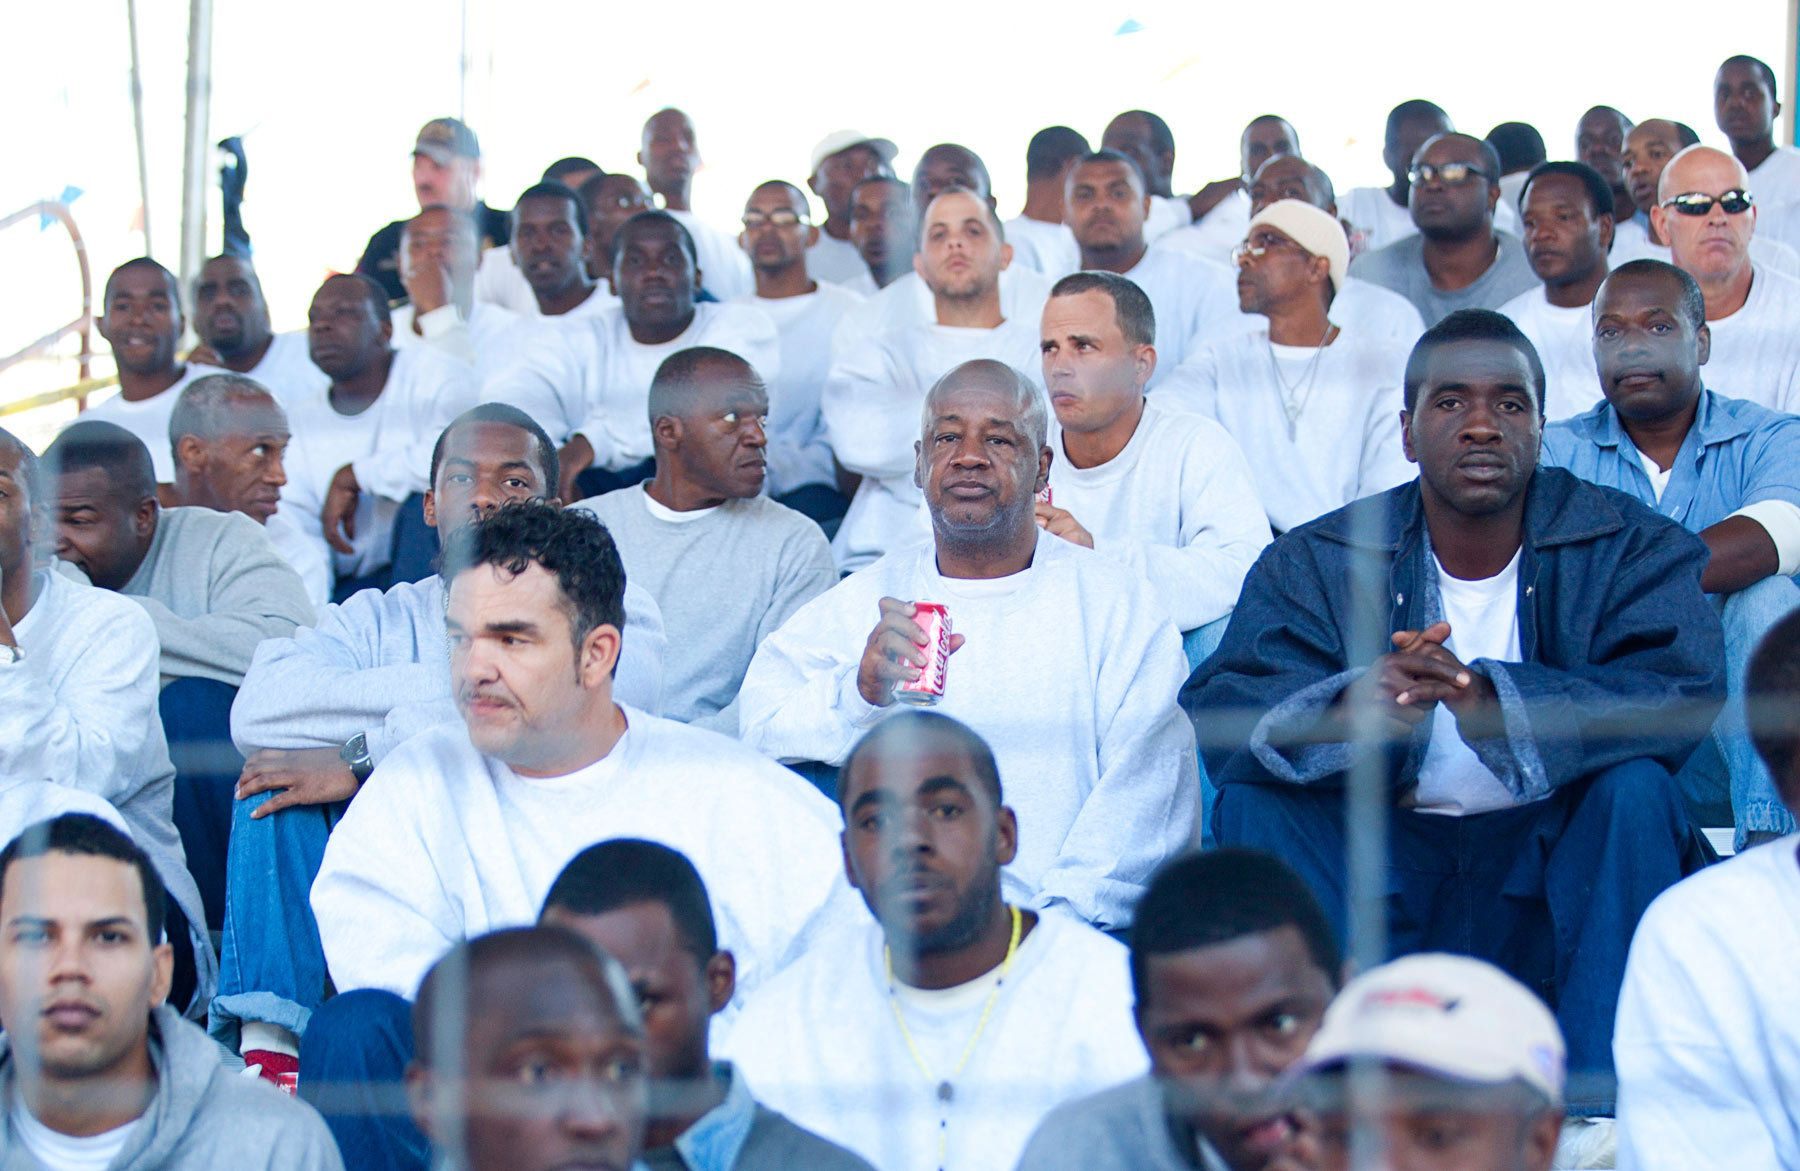 1angola_prison_rodeo_convicts_demographic.jpg